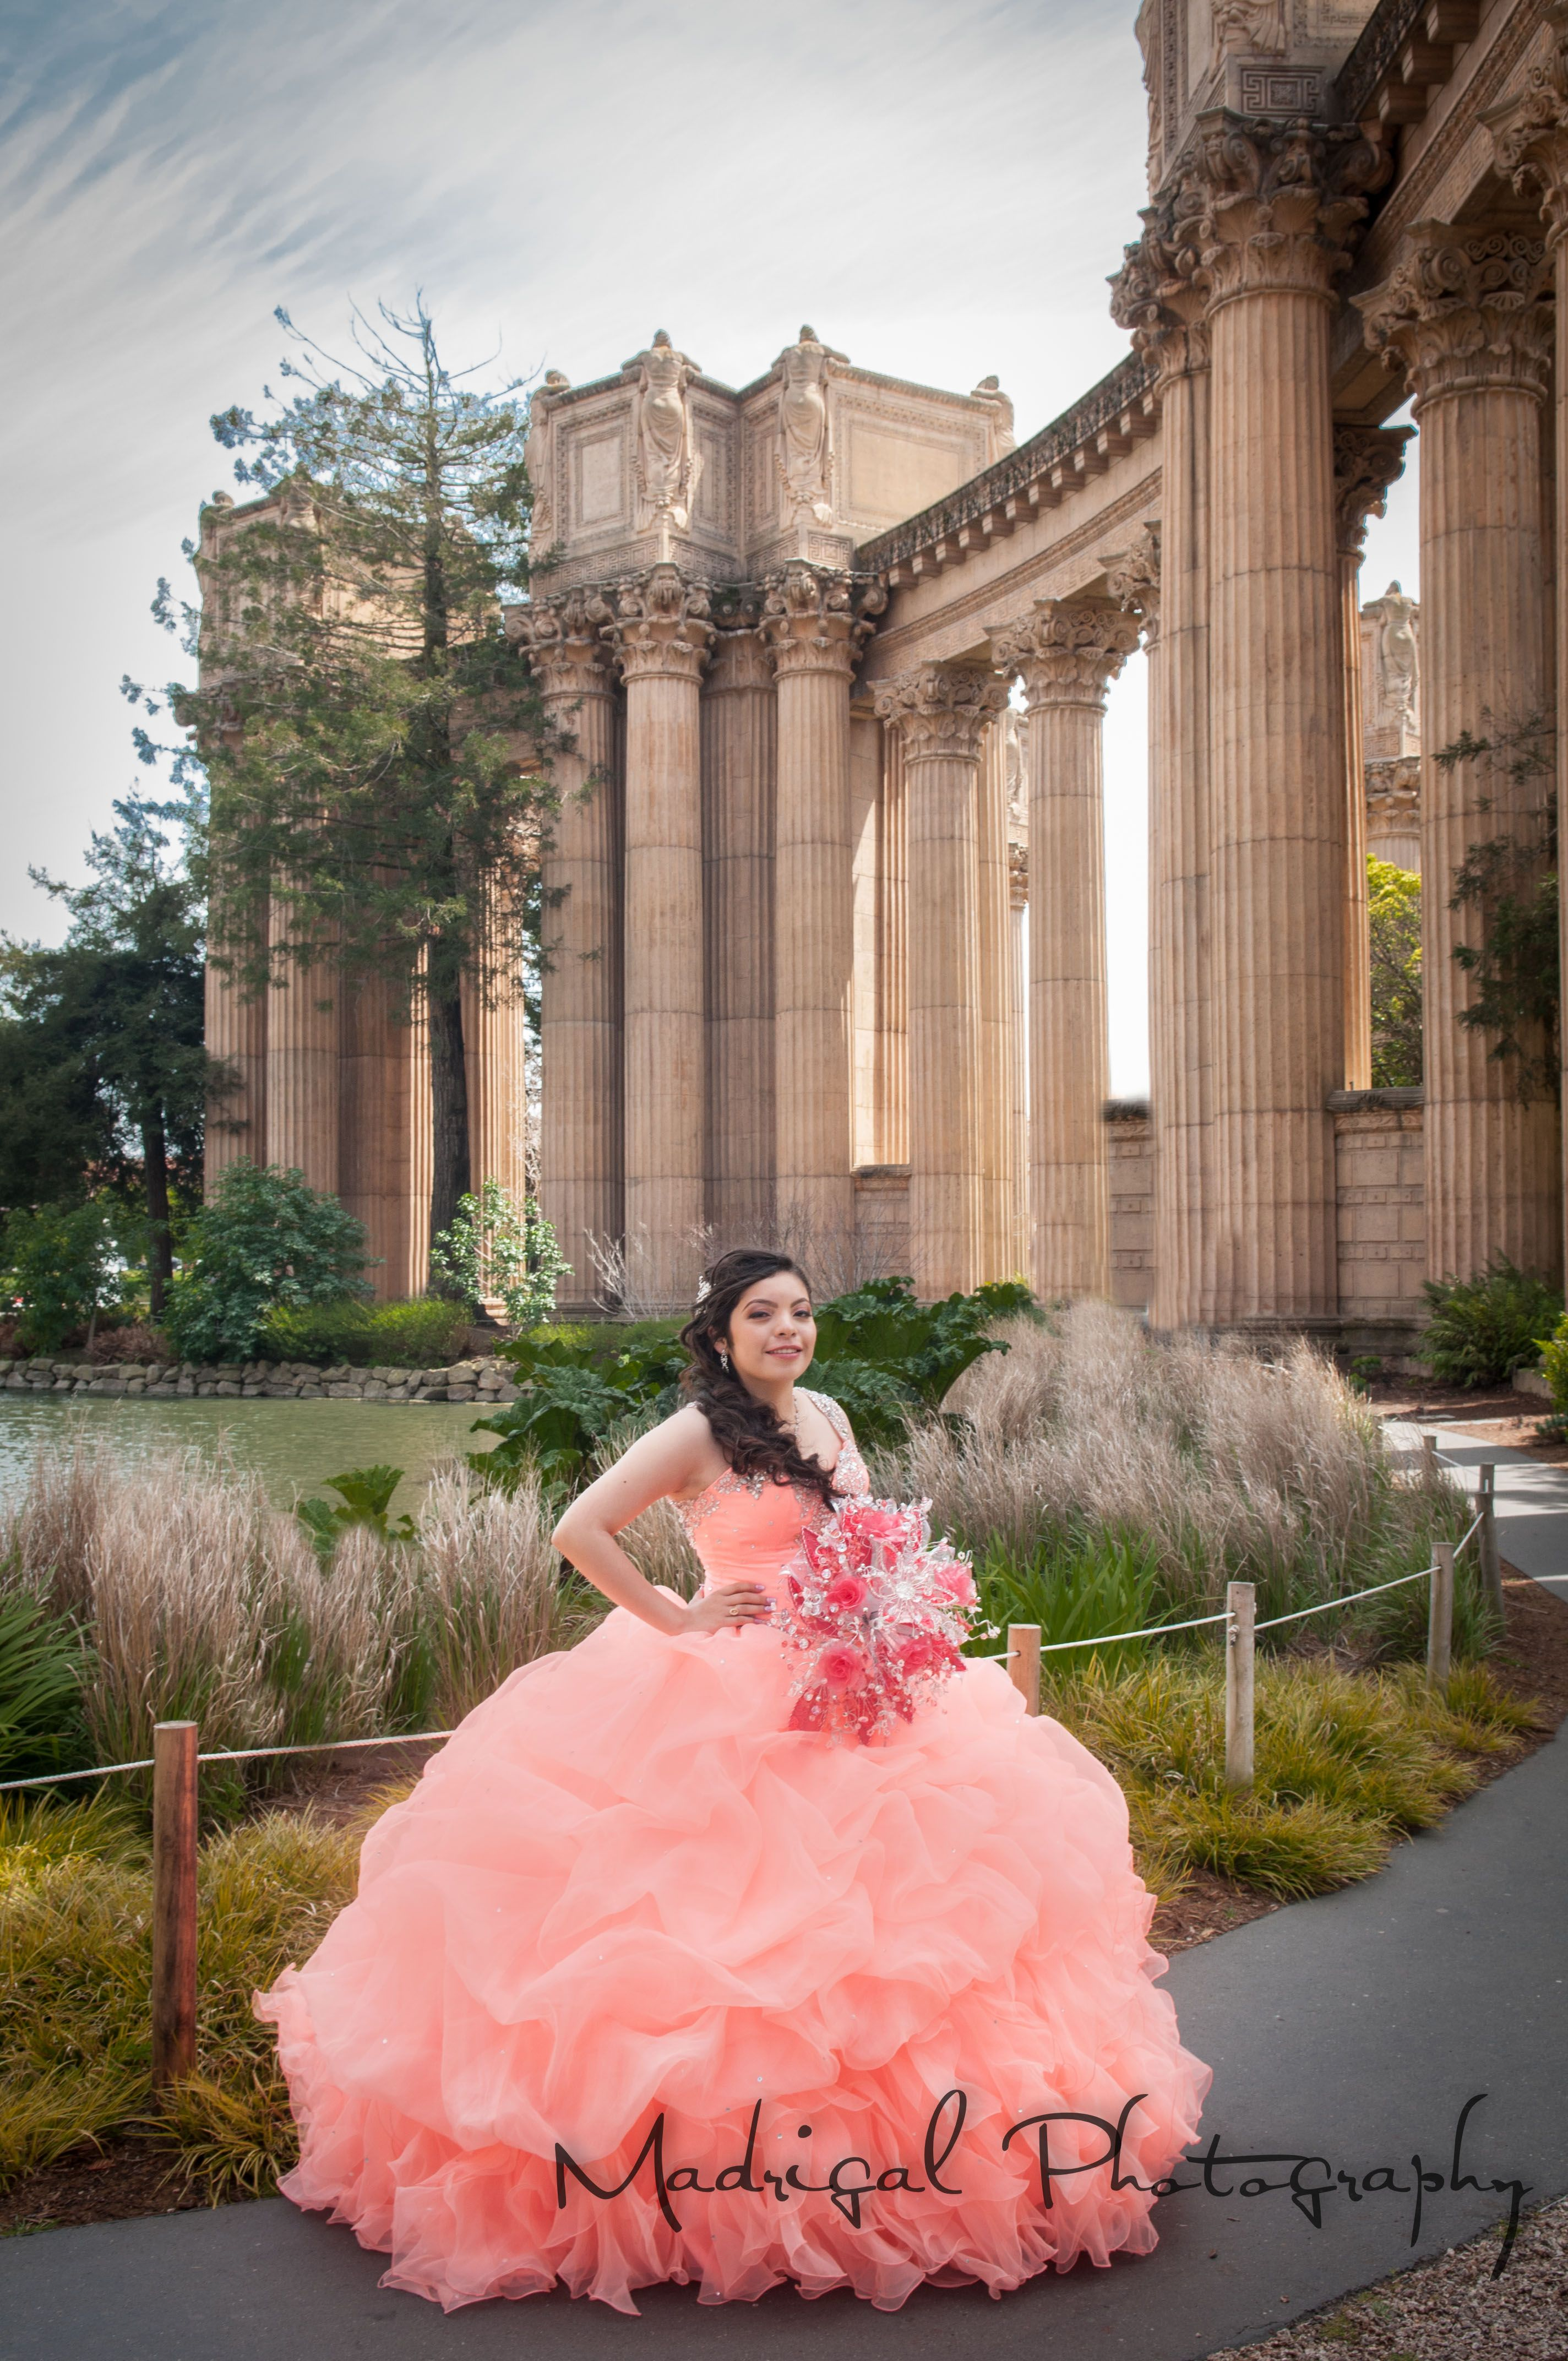 Quinceañera Photography, Palace of Fine Arts, San Francisco, Madrigal Photography